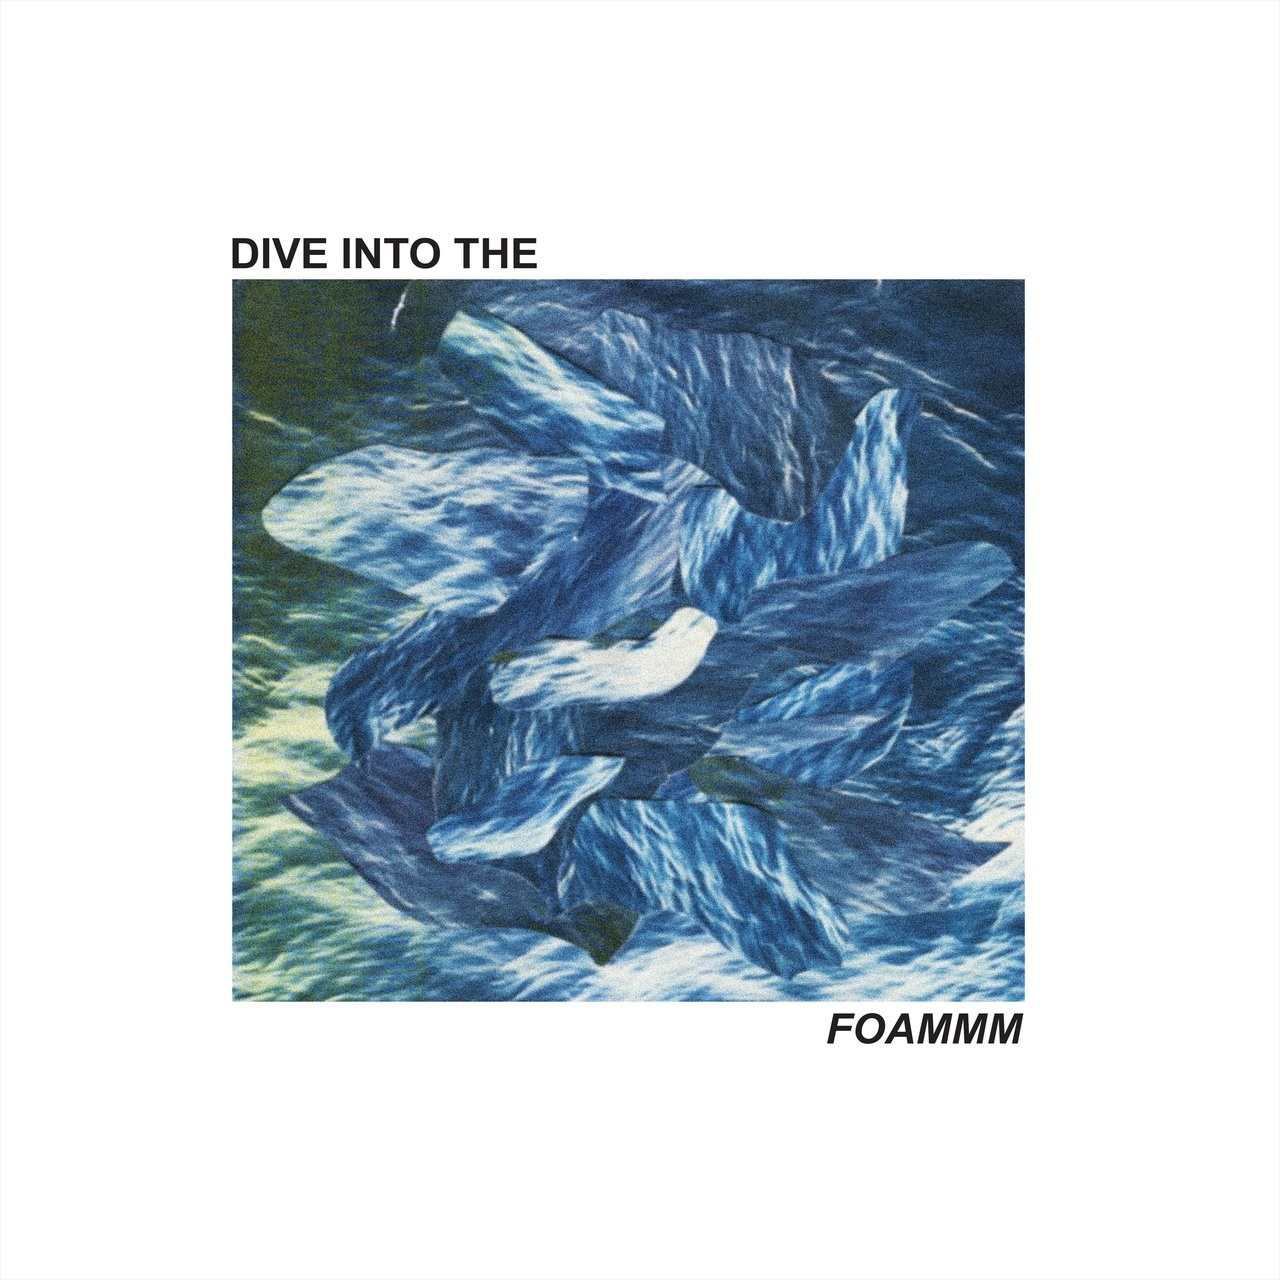 Dive into the Foammm